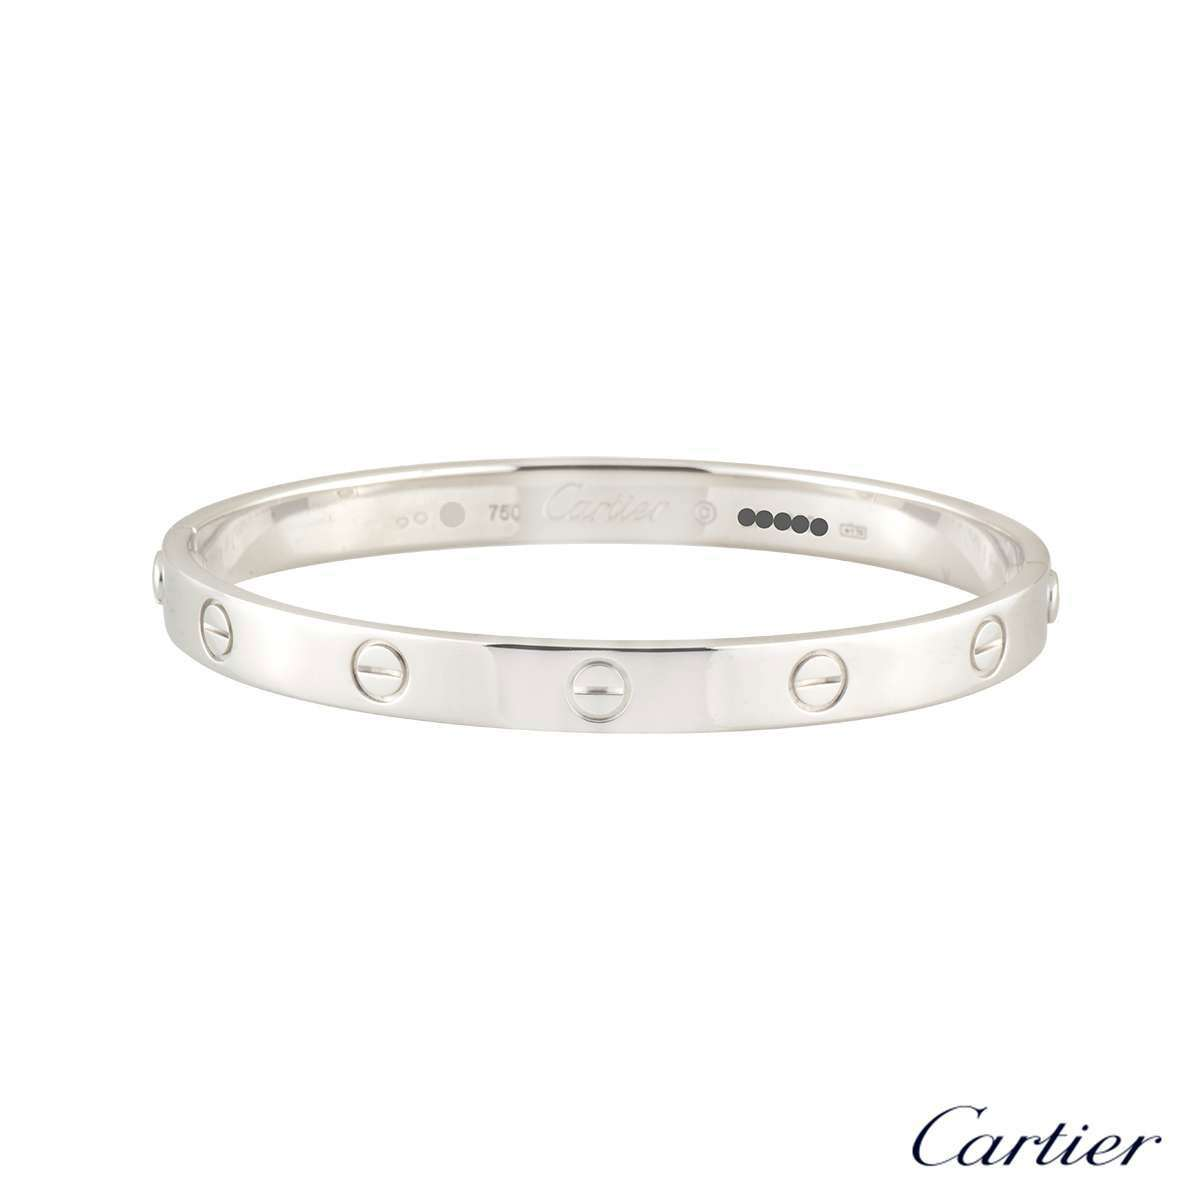 Cartier White Gold Plain Love Bracelet Size 18 B6035418